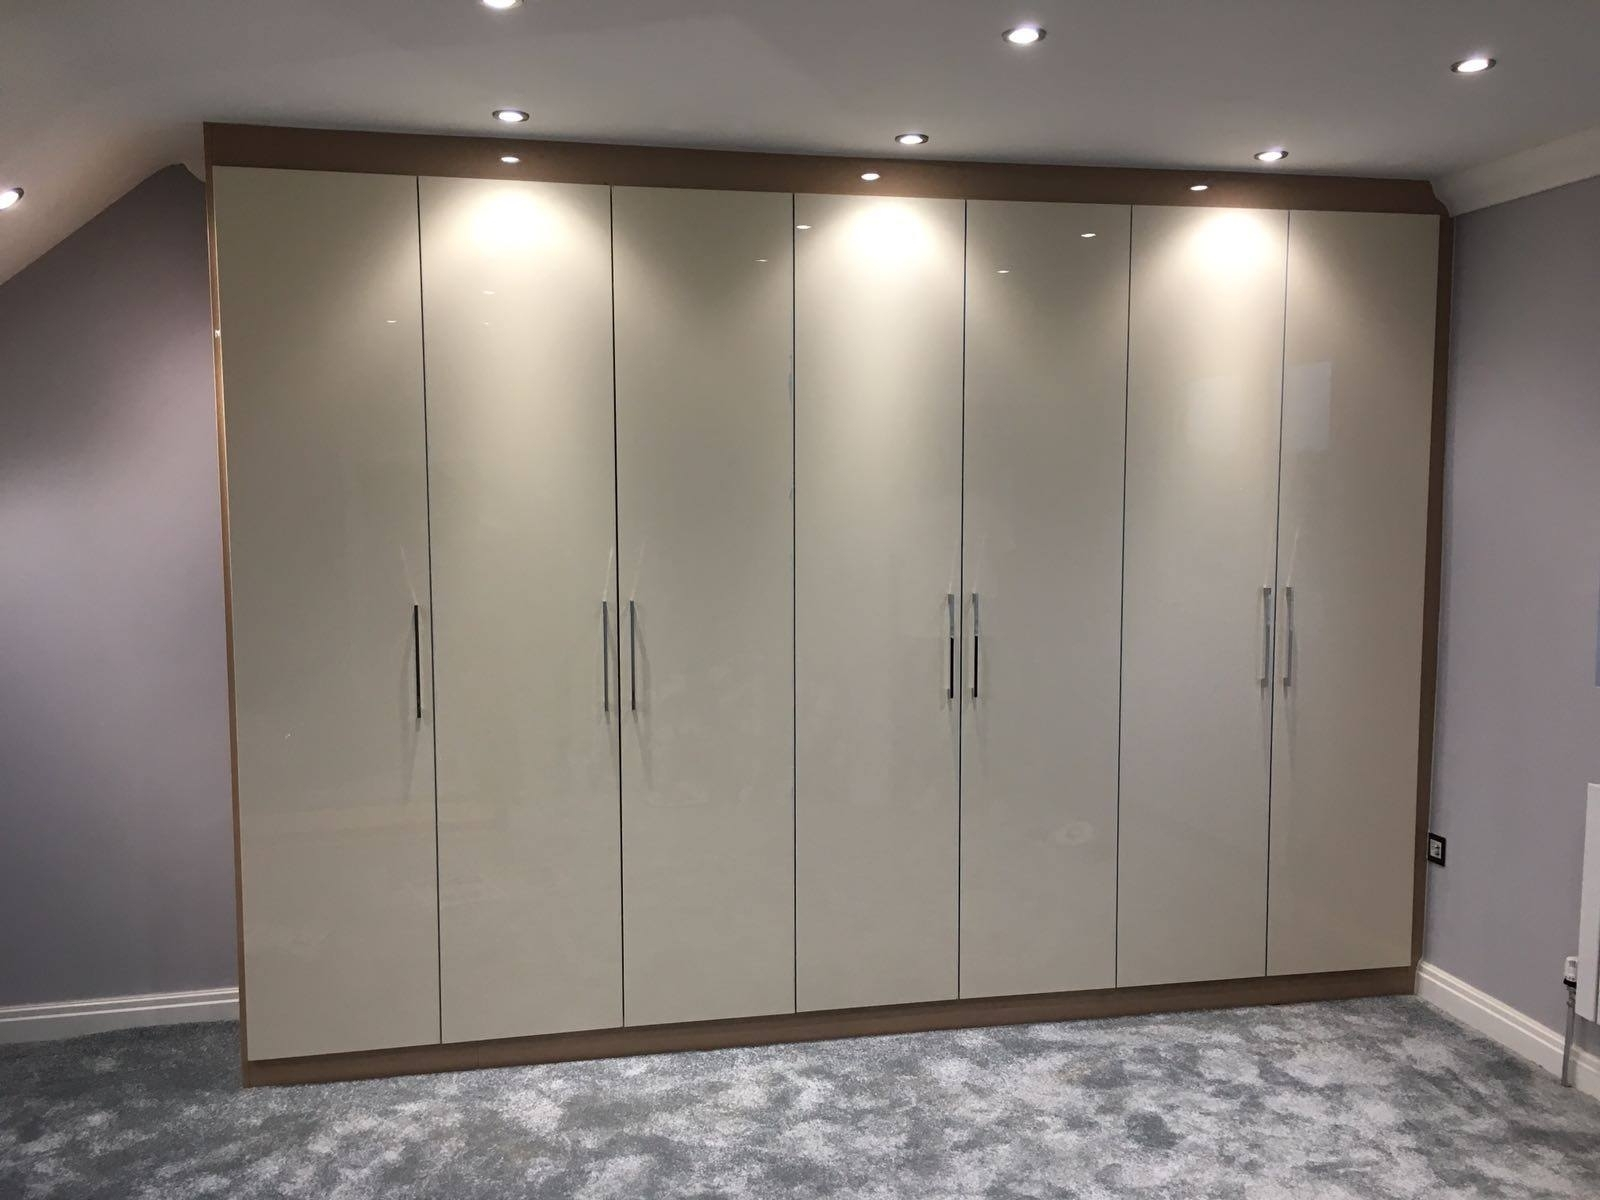 Fitted Wardrobes, Sliding Wardrobes, Built In Wardrobes, Walk In Pertaining To Well Known Gloss Wardrobes (View 7 of 15)